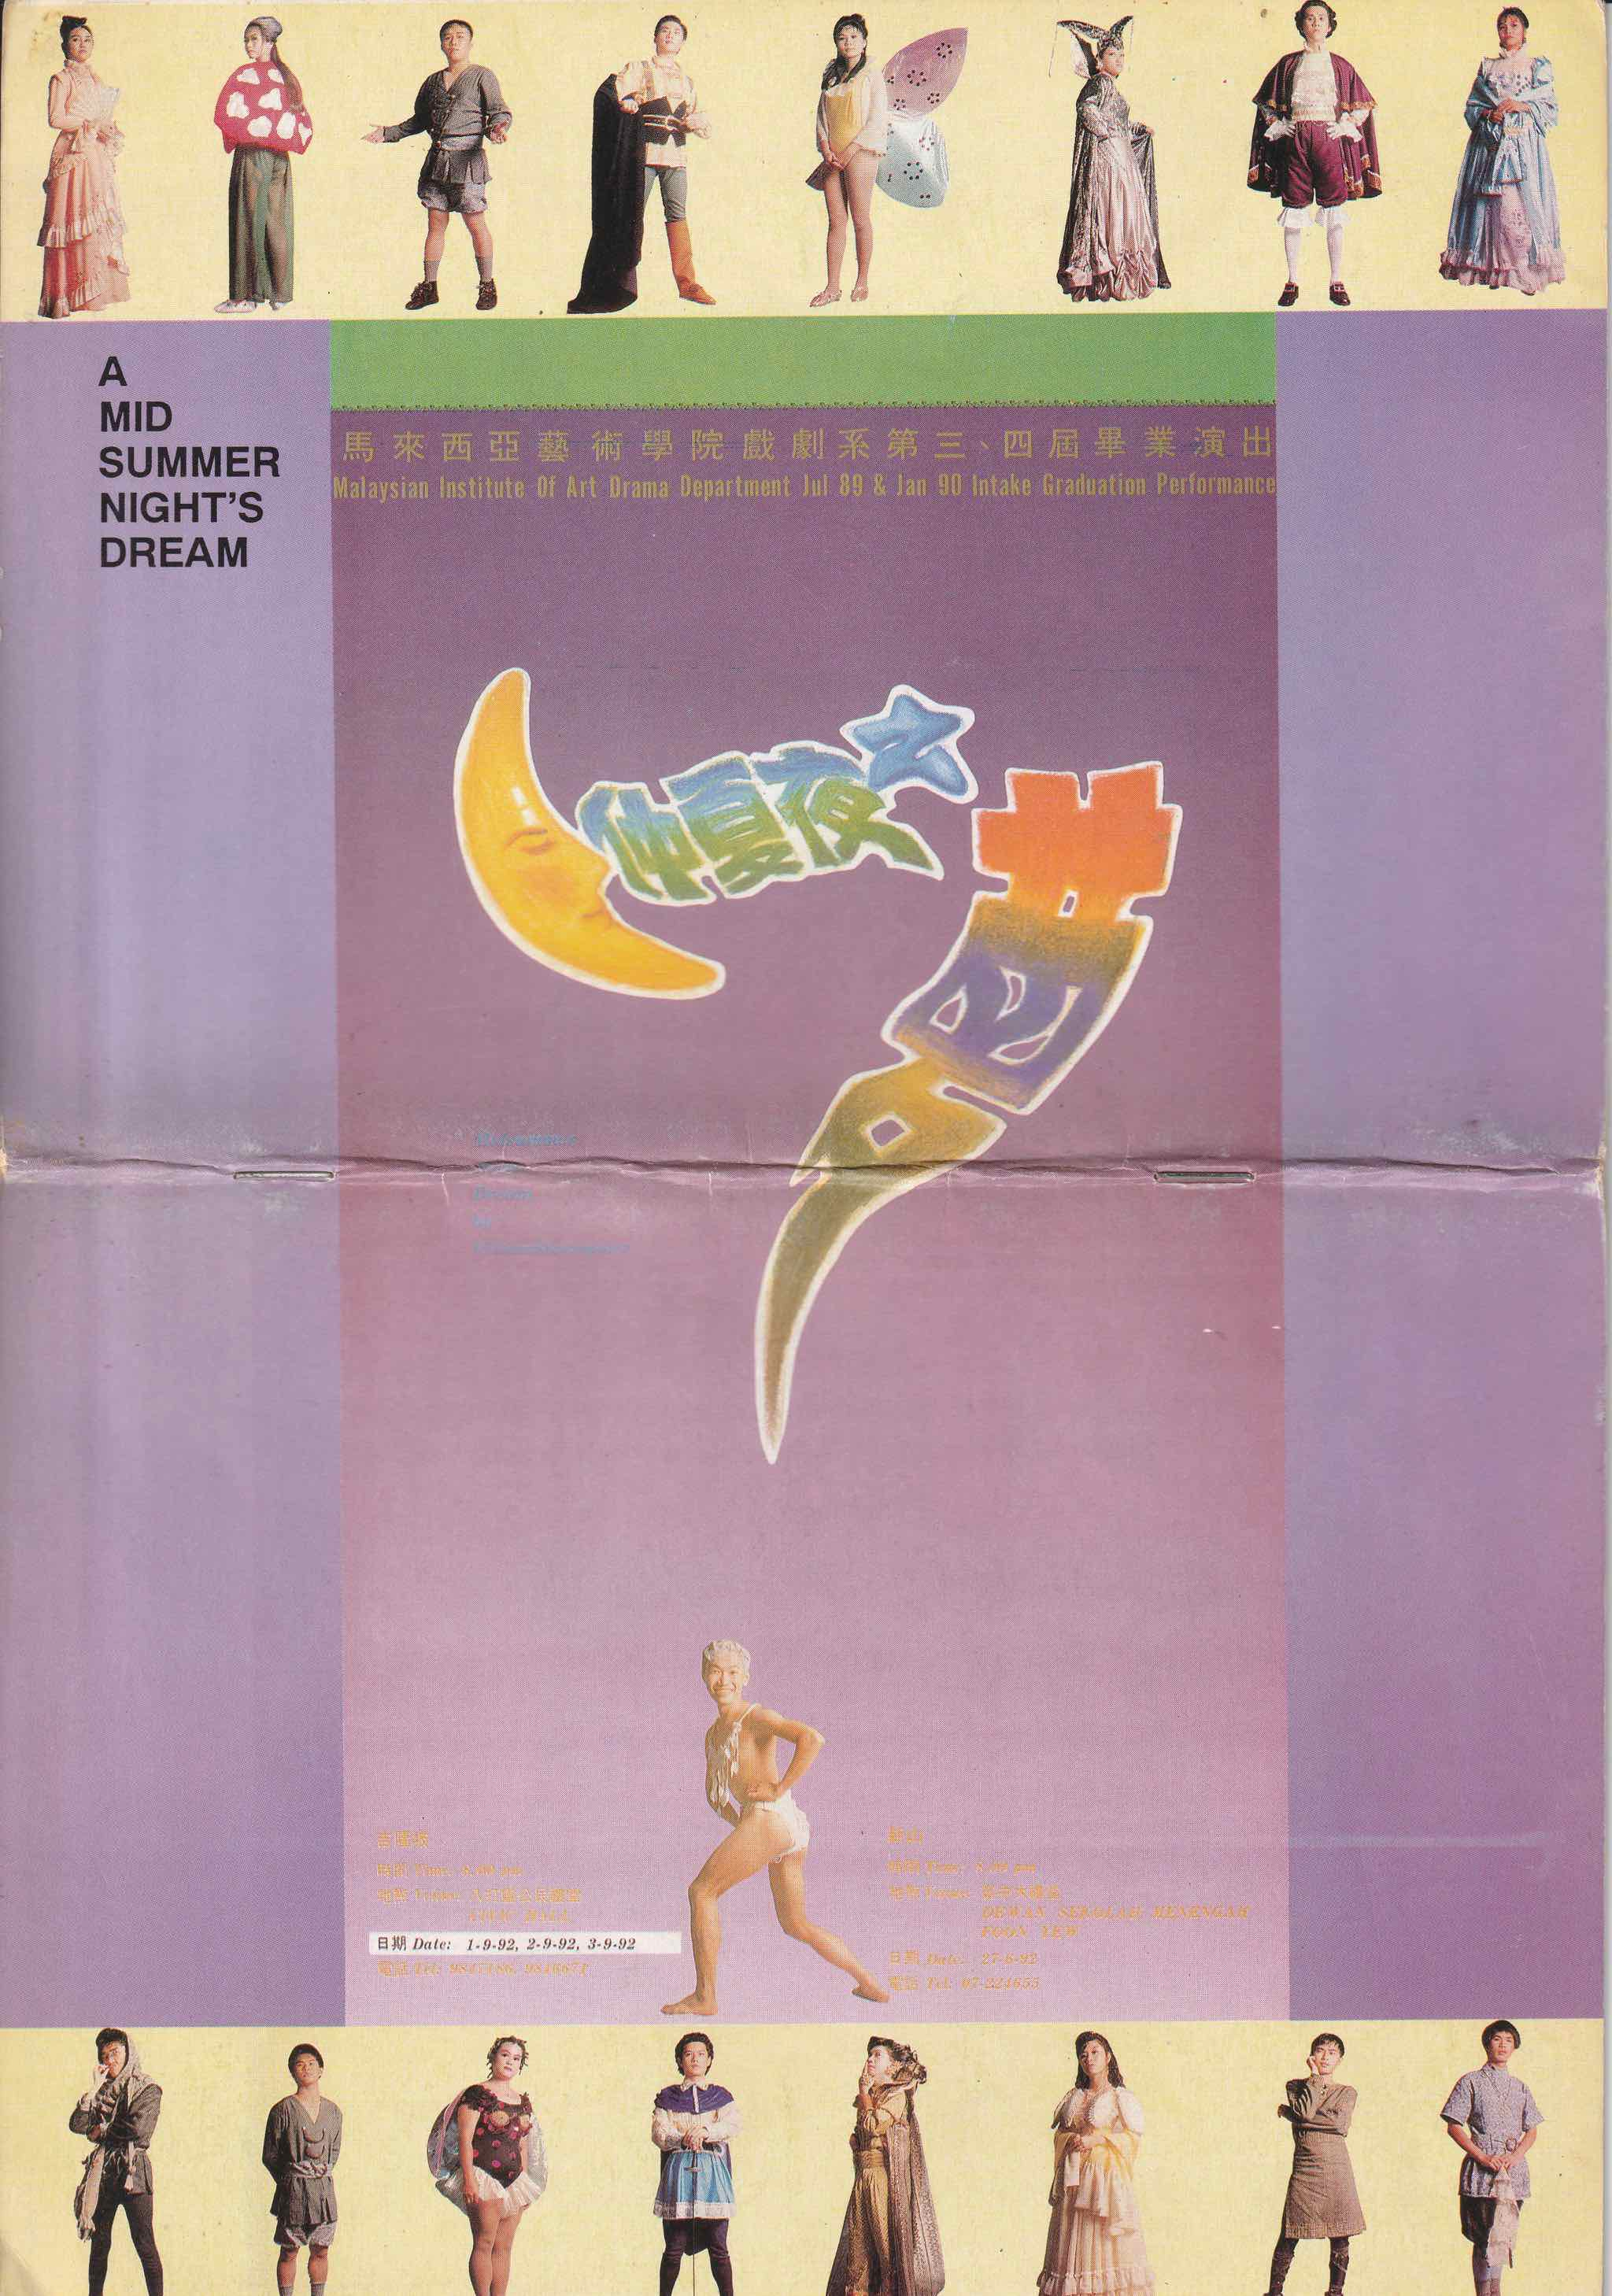 1992 A Mid Summer Night's Dream Program Cover